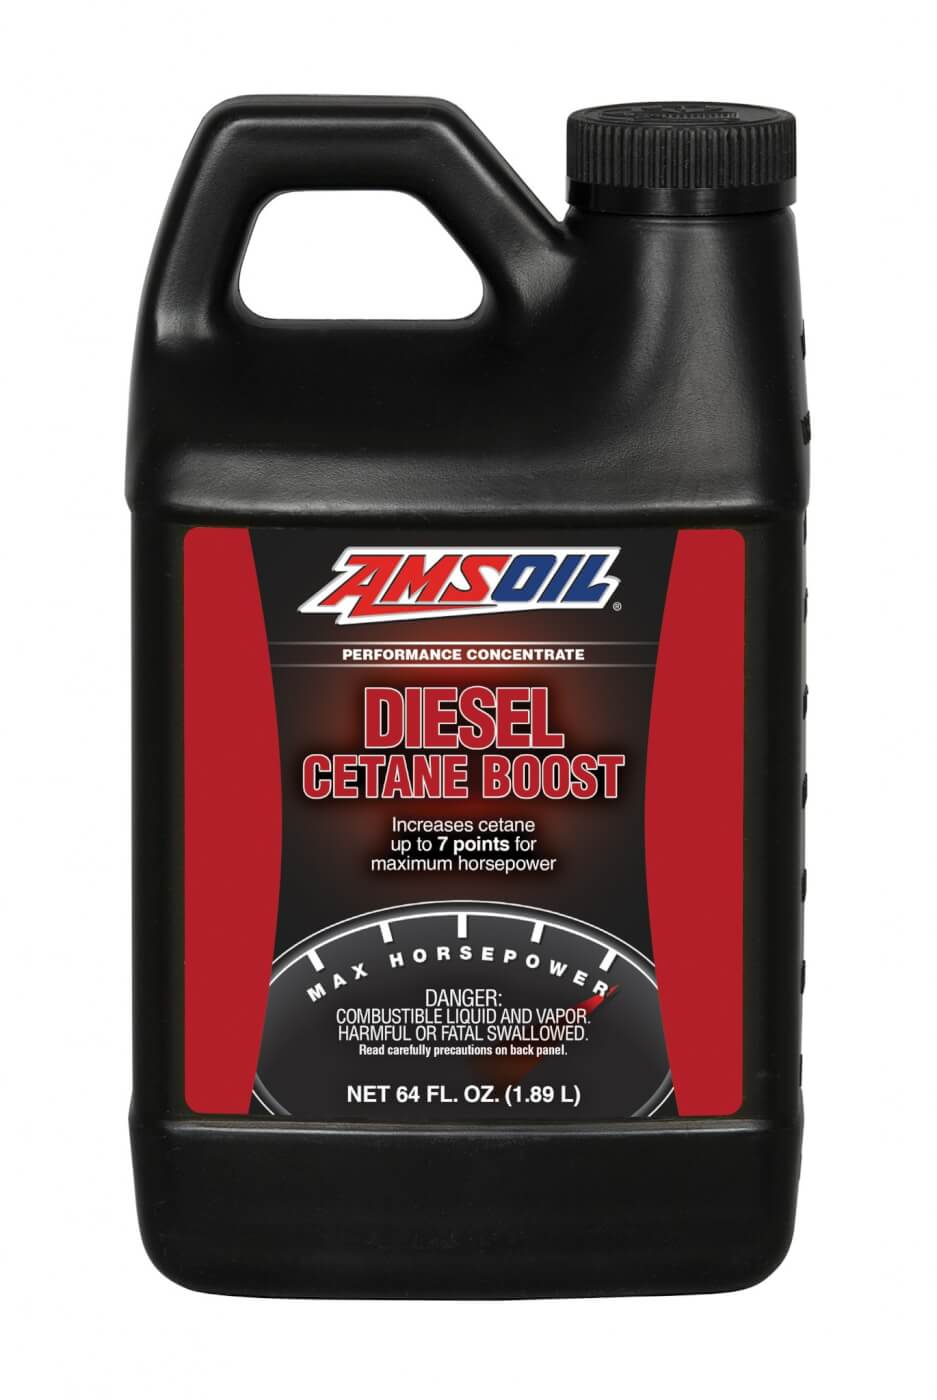 Amsoil Diesel Cetane Boost Now Offered In Half-Gallon Size